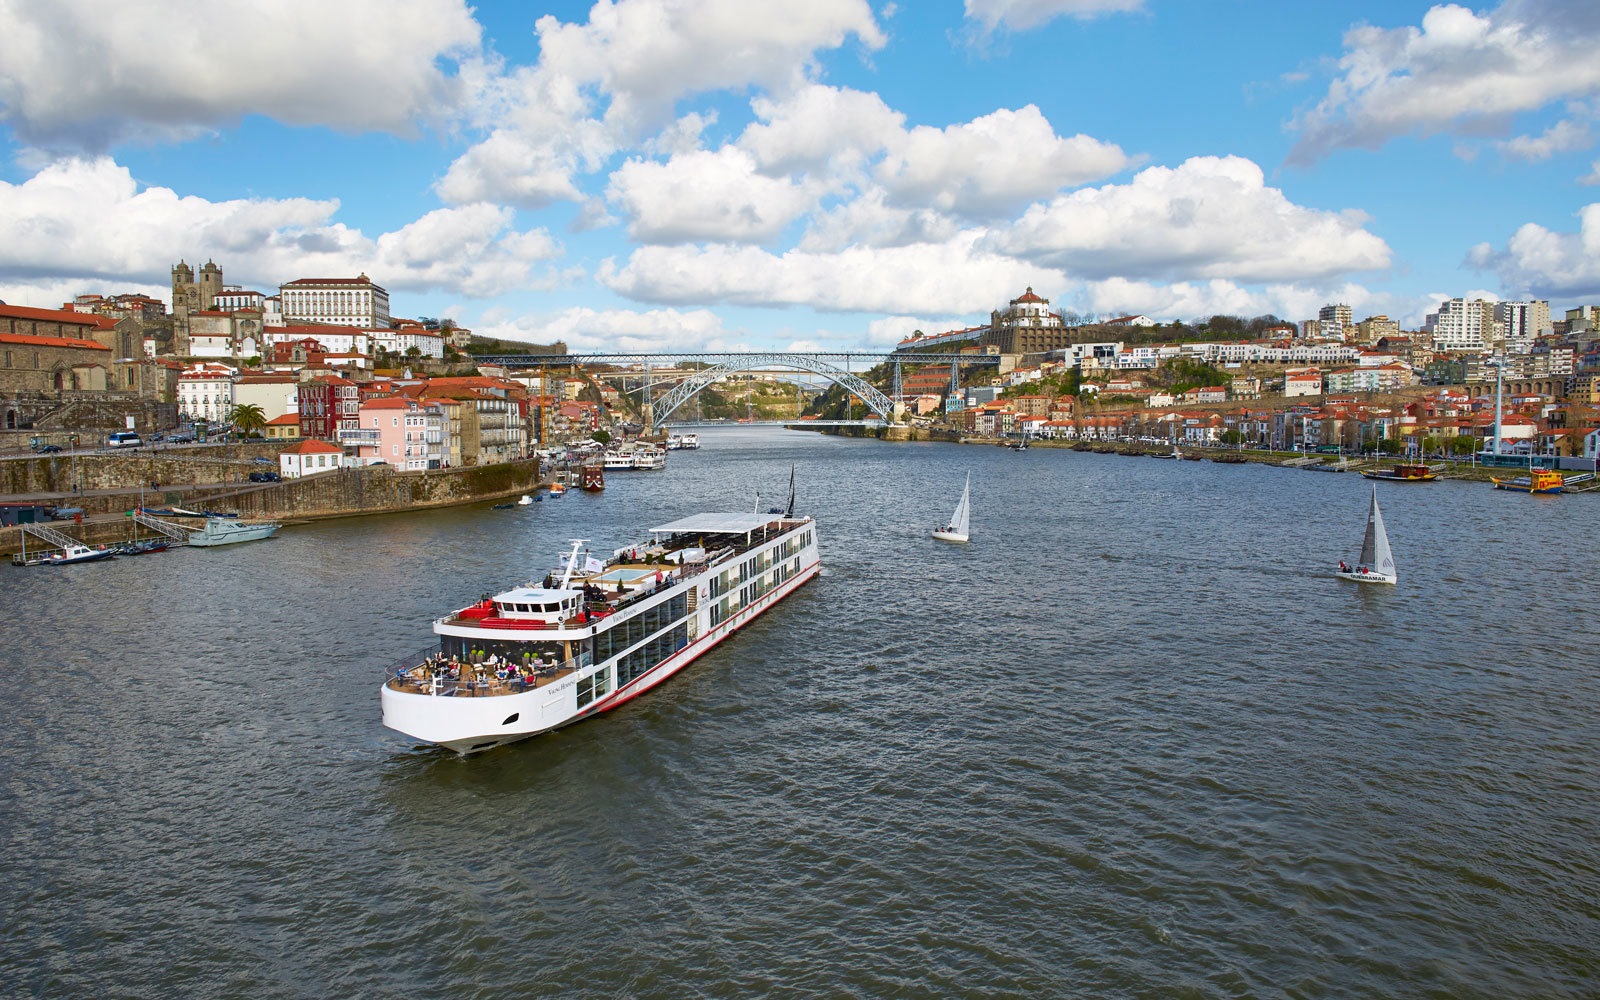 The Best River Cruises for Exploring Europe This Summer